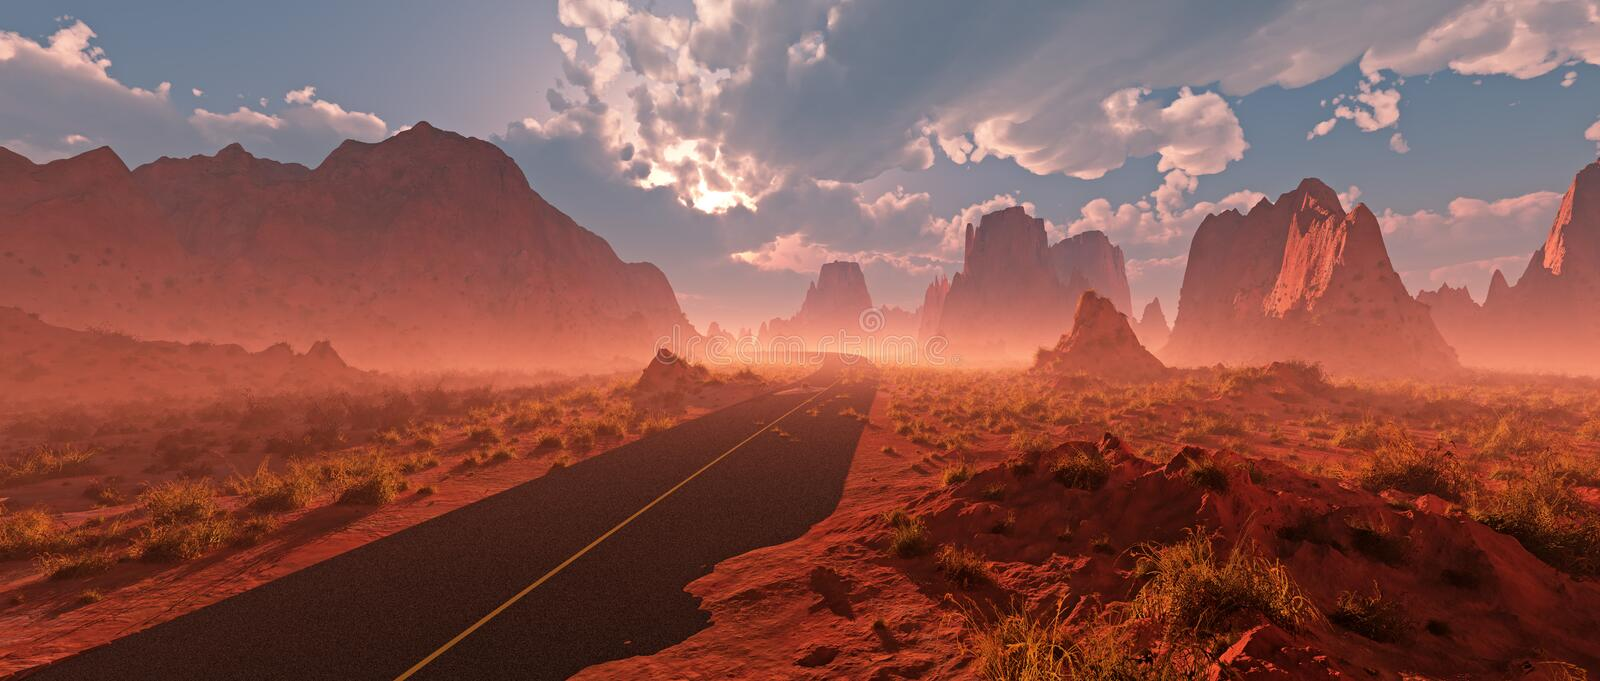 Old road through red rocky desert landscape with cloudy sky and royalty free illustration